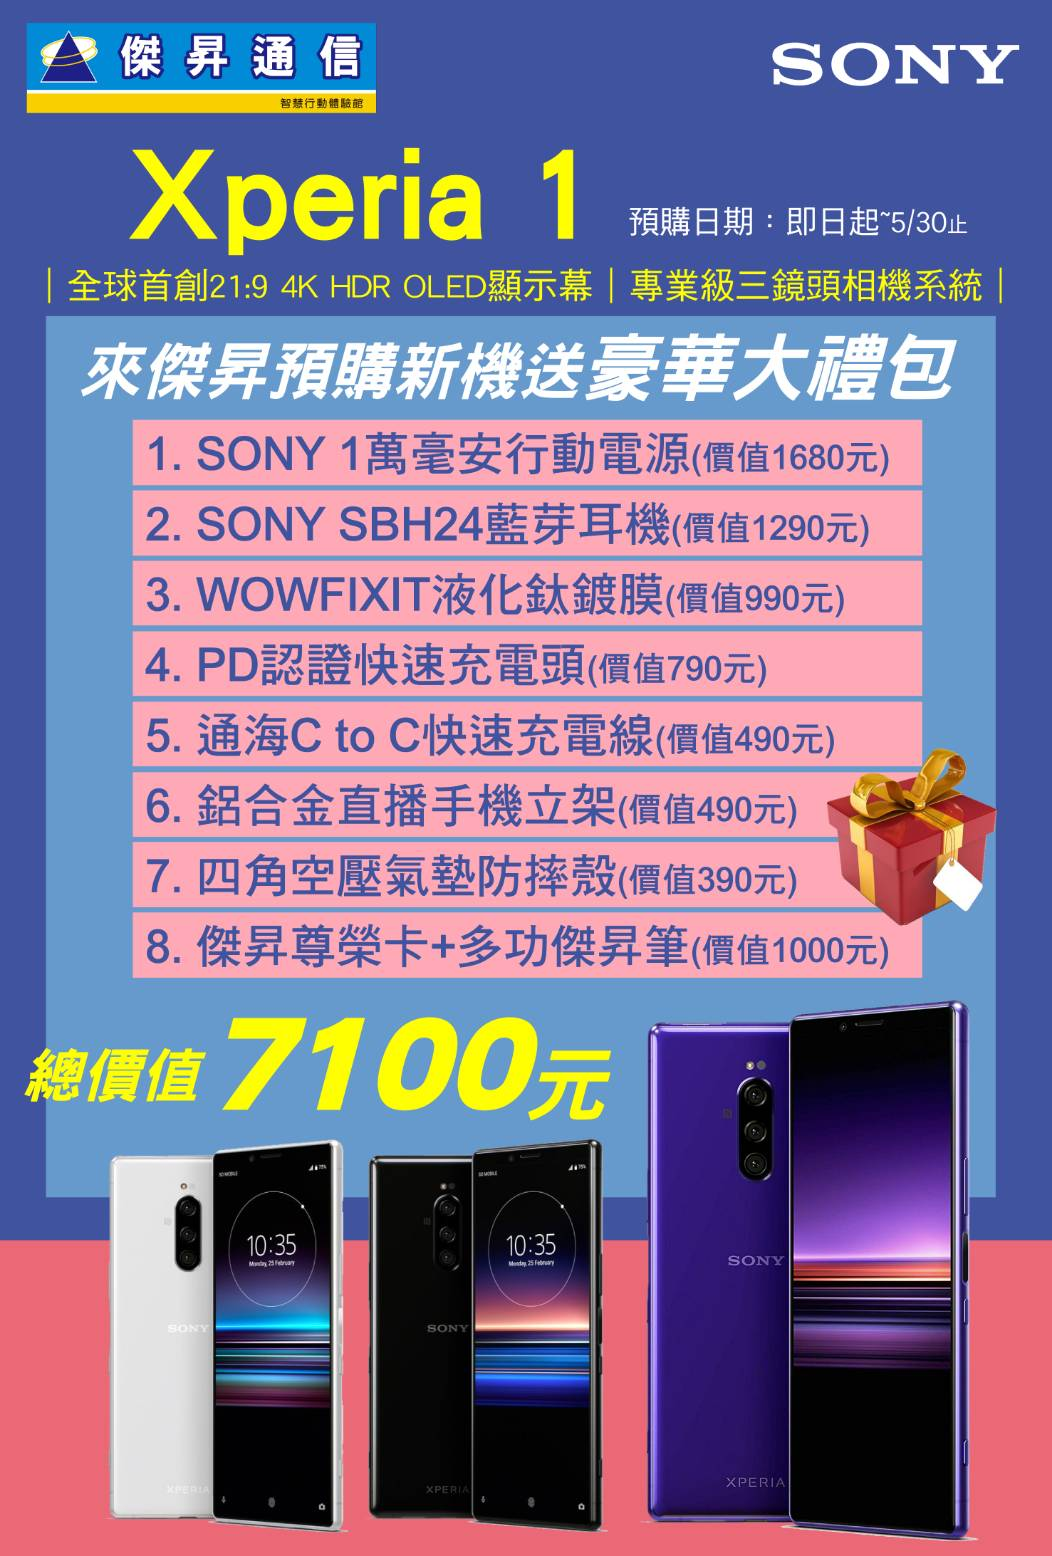 Sony Mobile Xperia 1 正式宣布